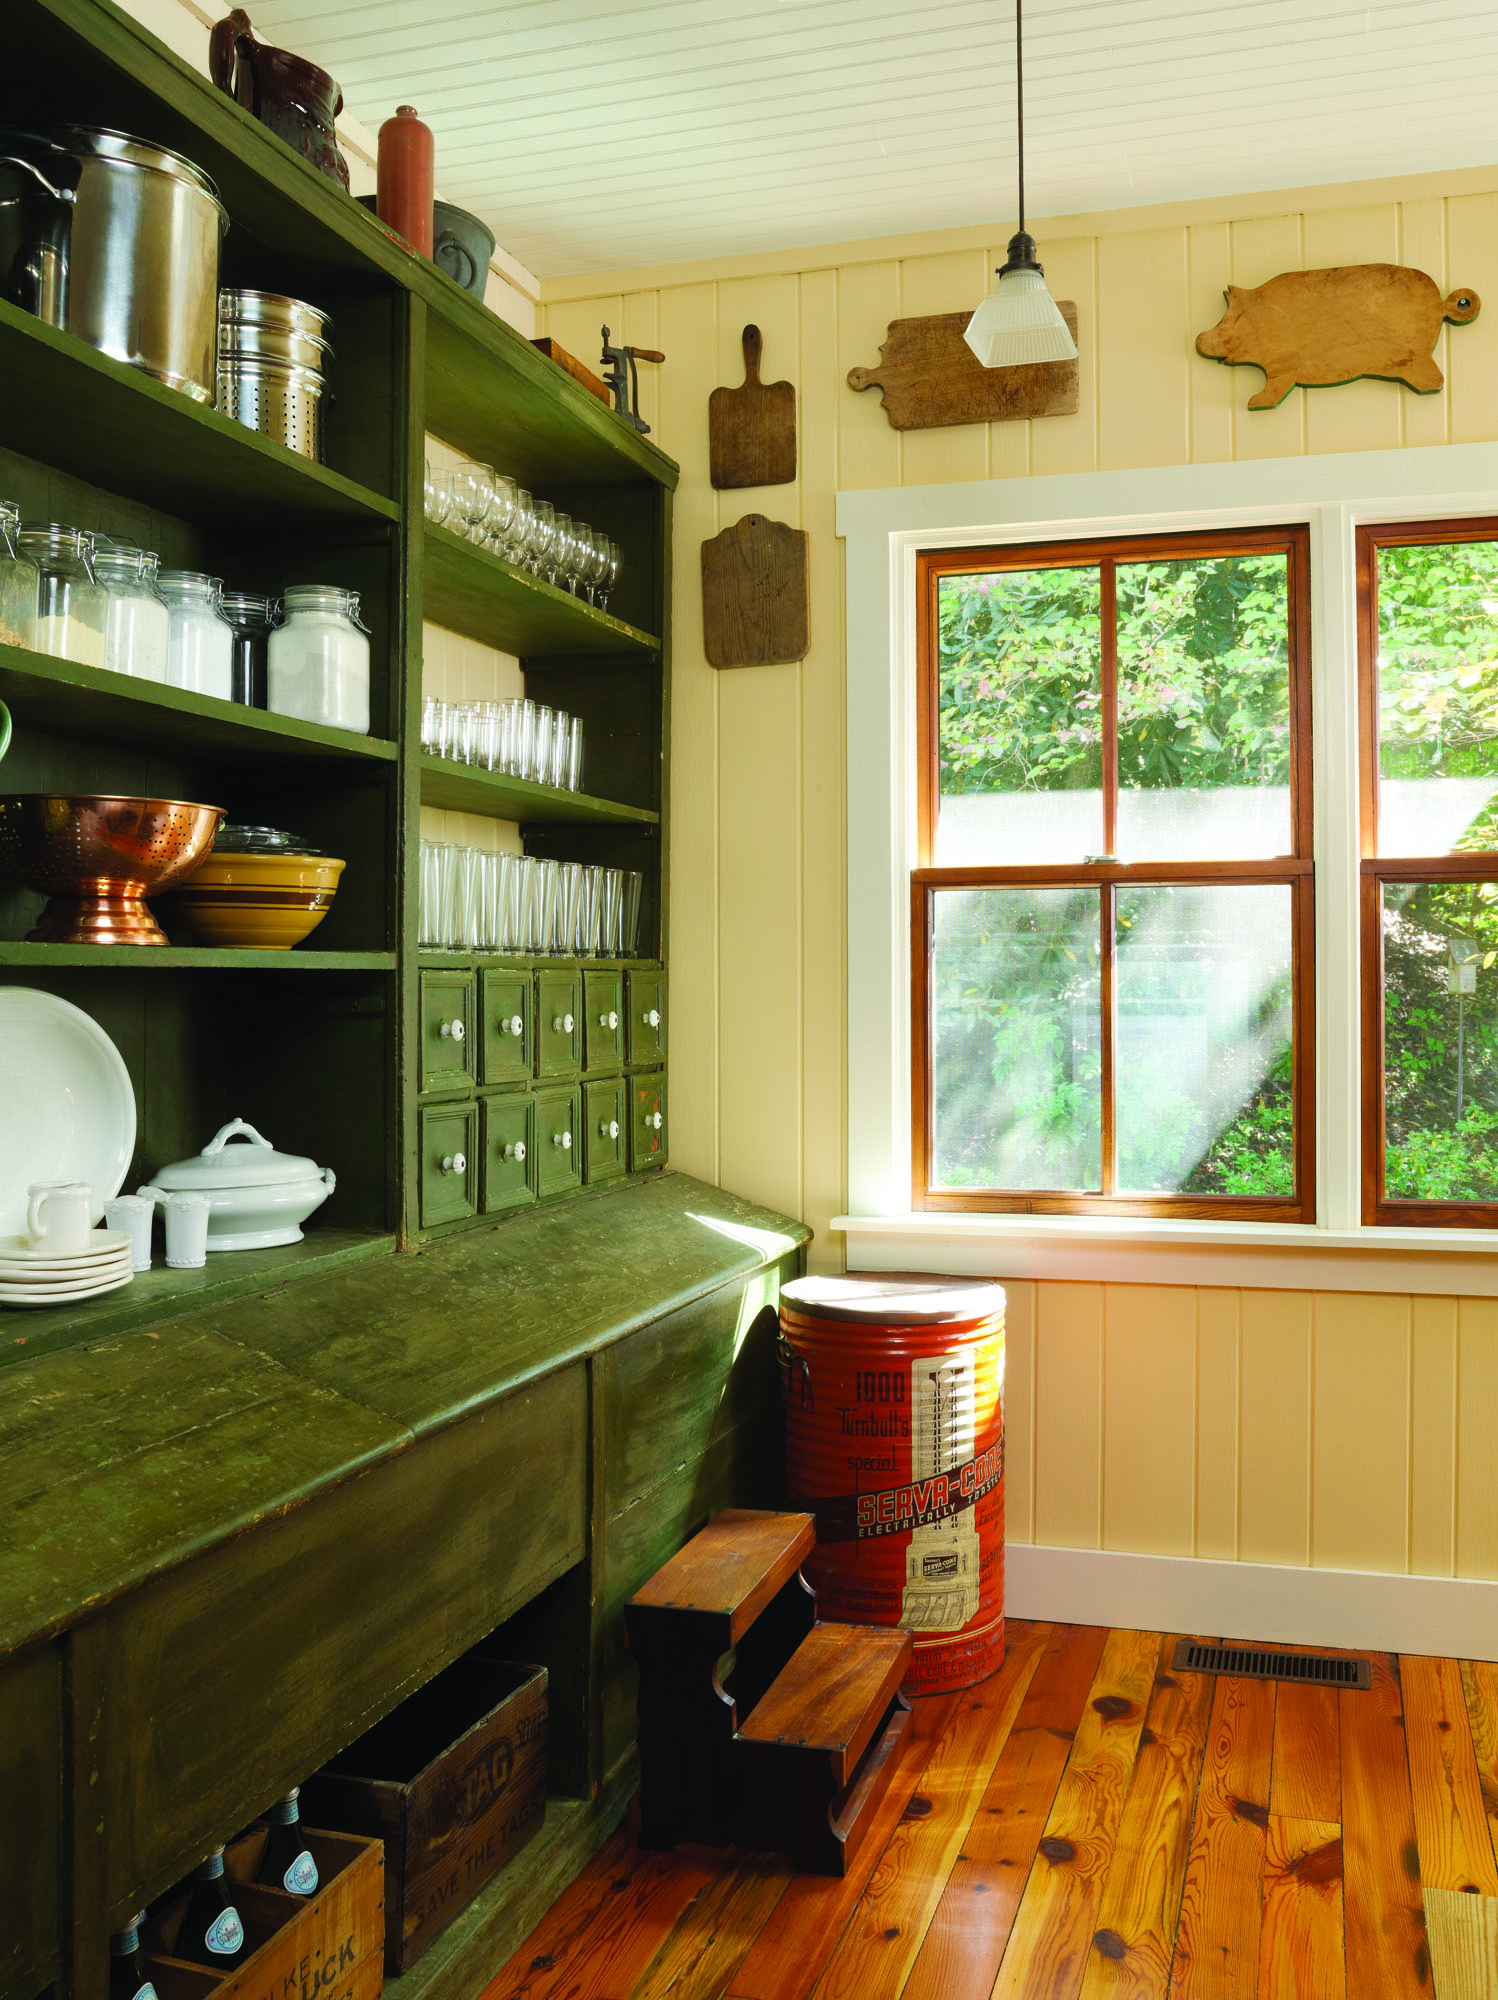 GridleyGraves_Edwards_Pantry_gn